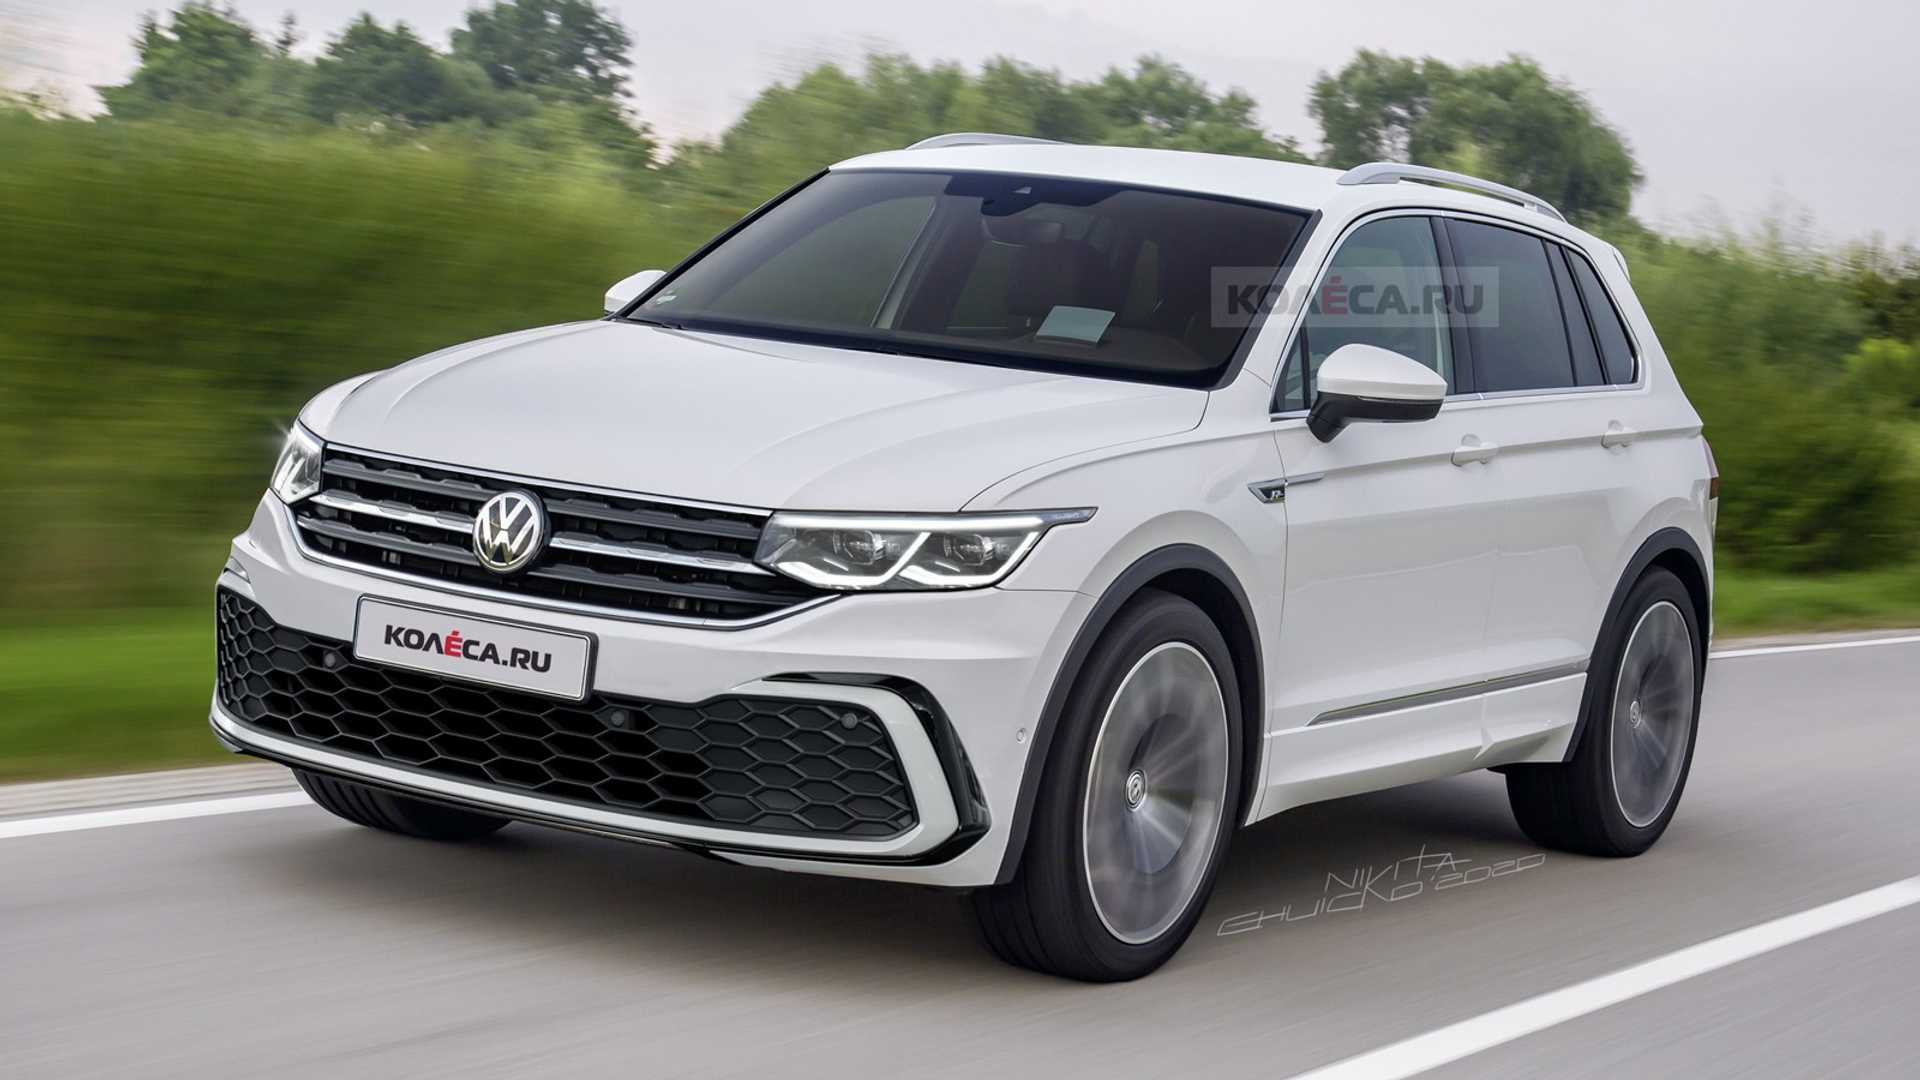 2020 VW Tiguan Specs and Review